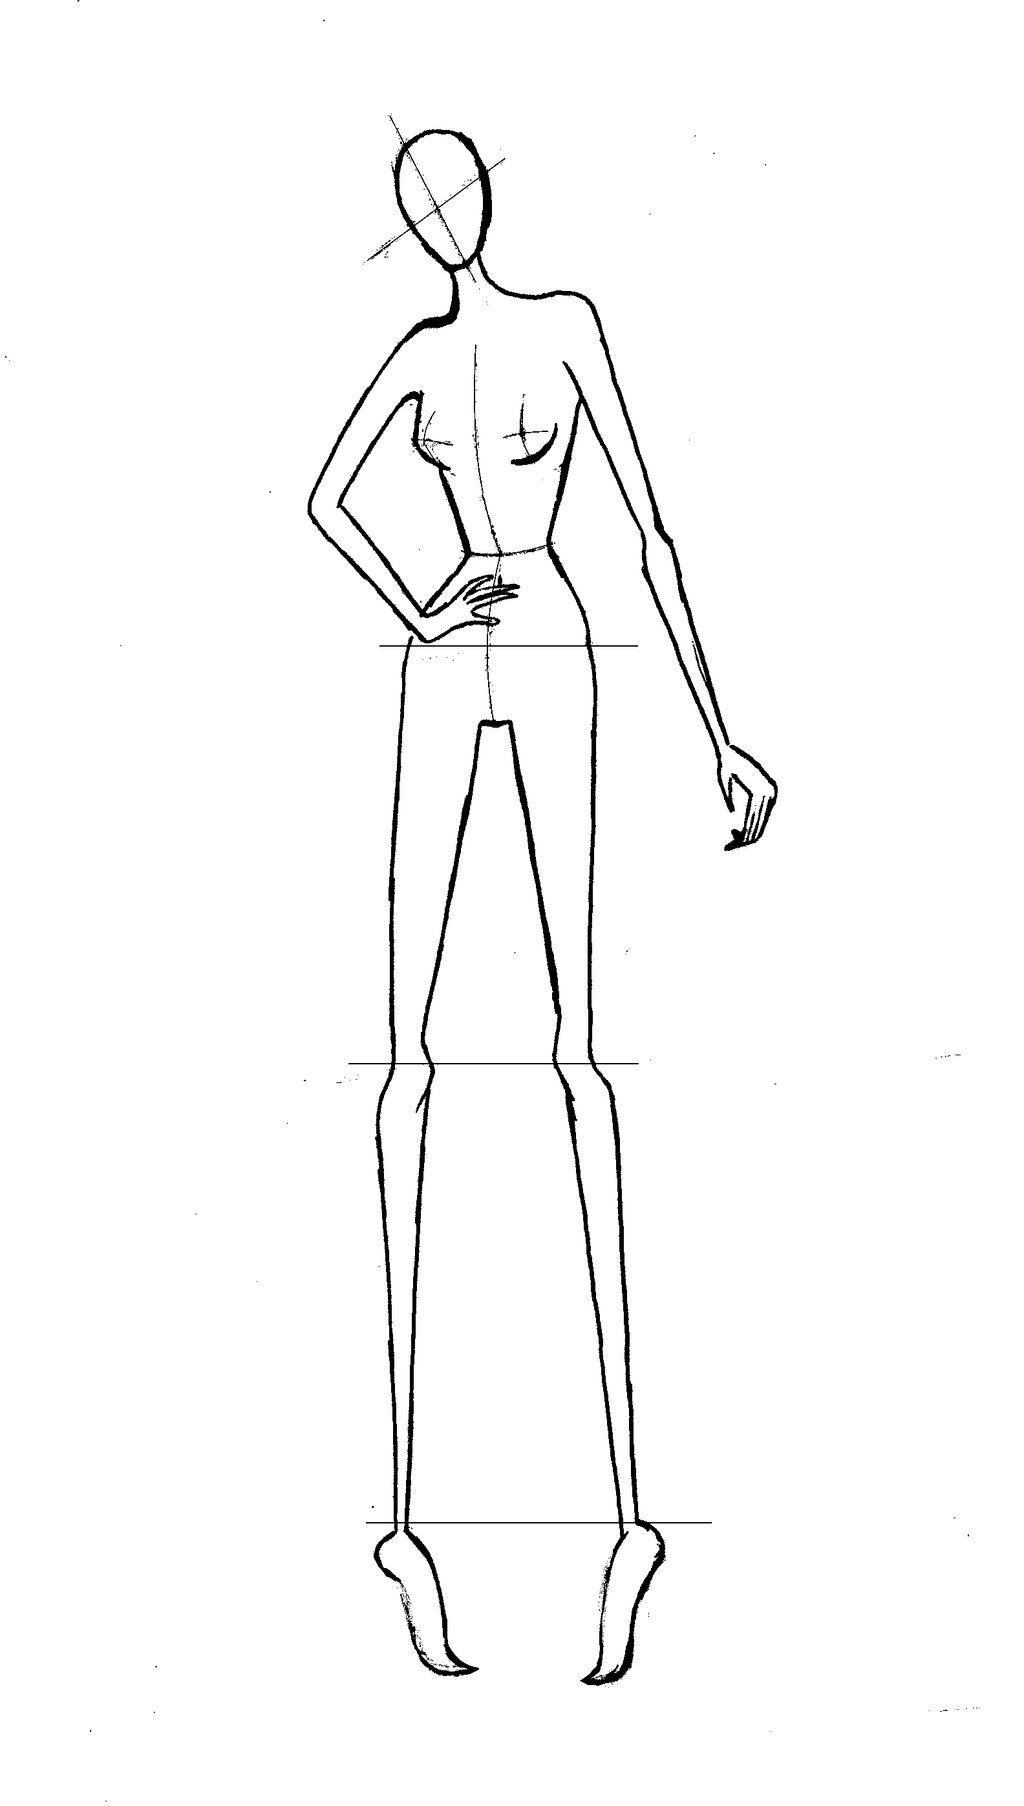 Fashion figure template by ramoneheroineiantart on fashion figure template by ramoneheroineiantart on deviantart pronofoot35fo Gallery